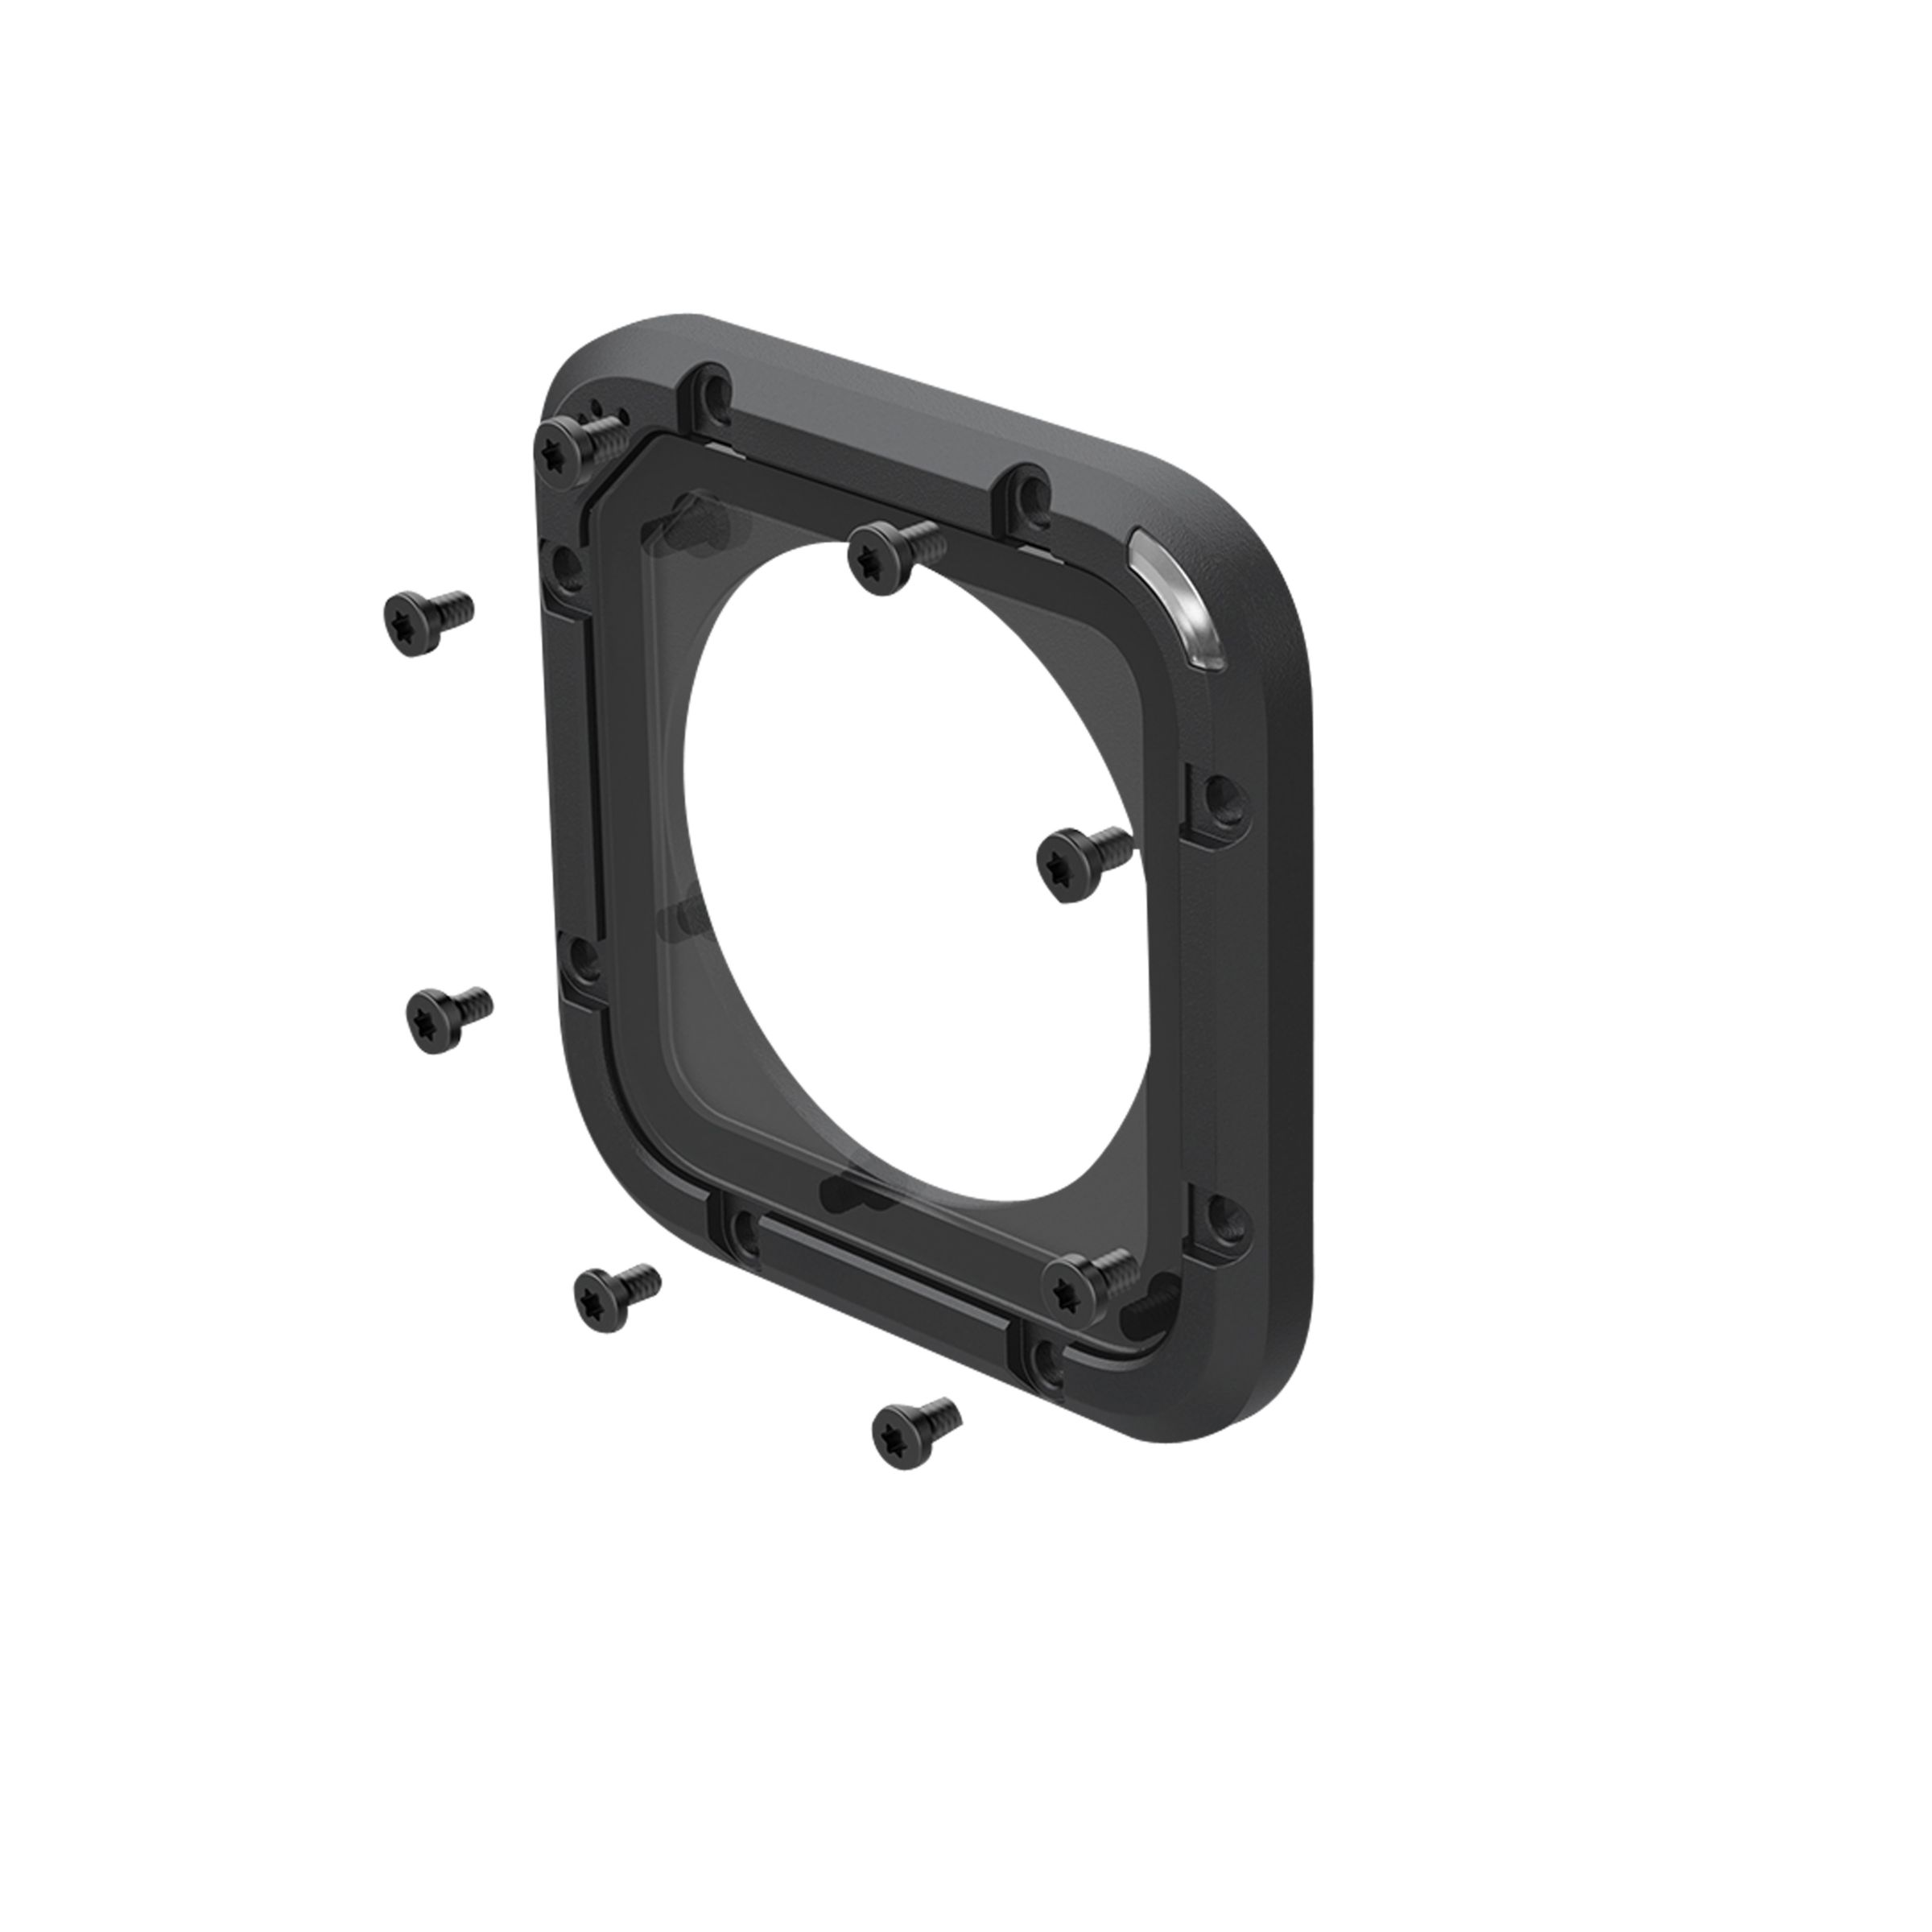 Gopro GoPro Lens Replacement Kit for HERO5 Session